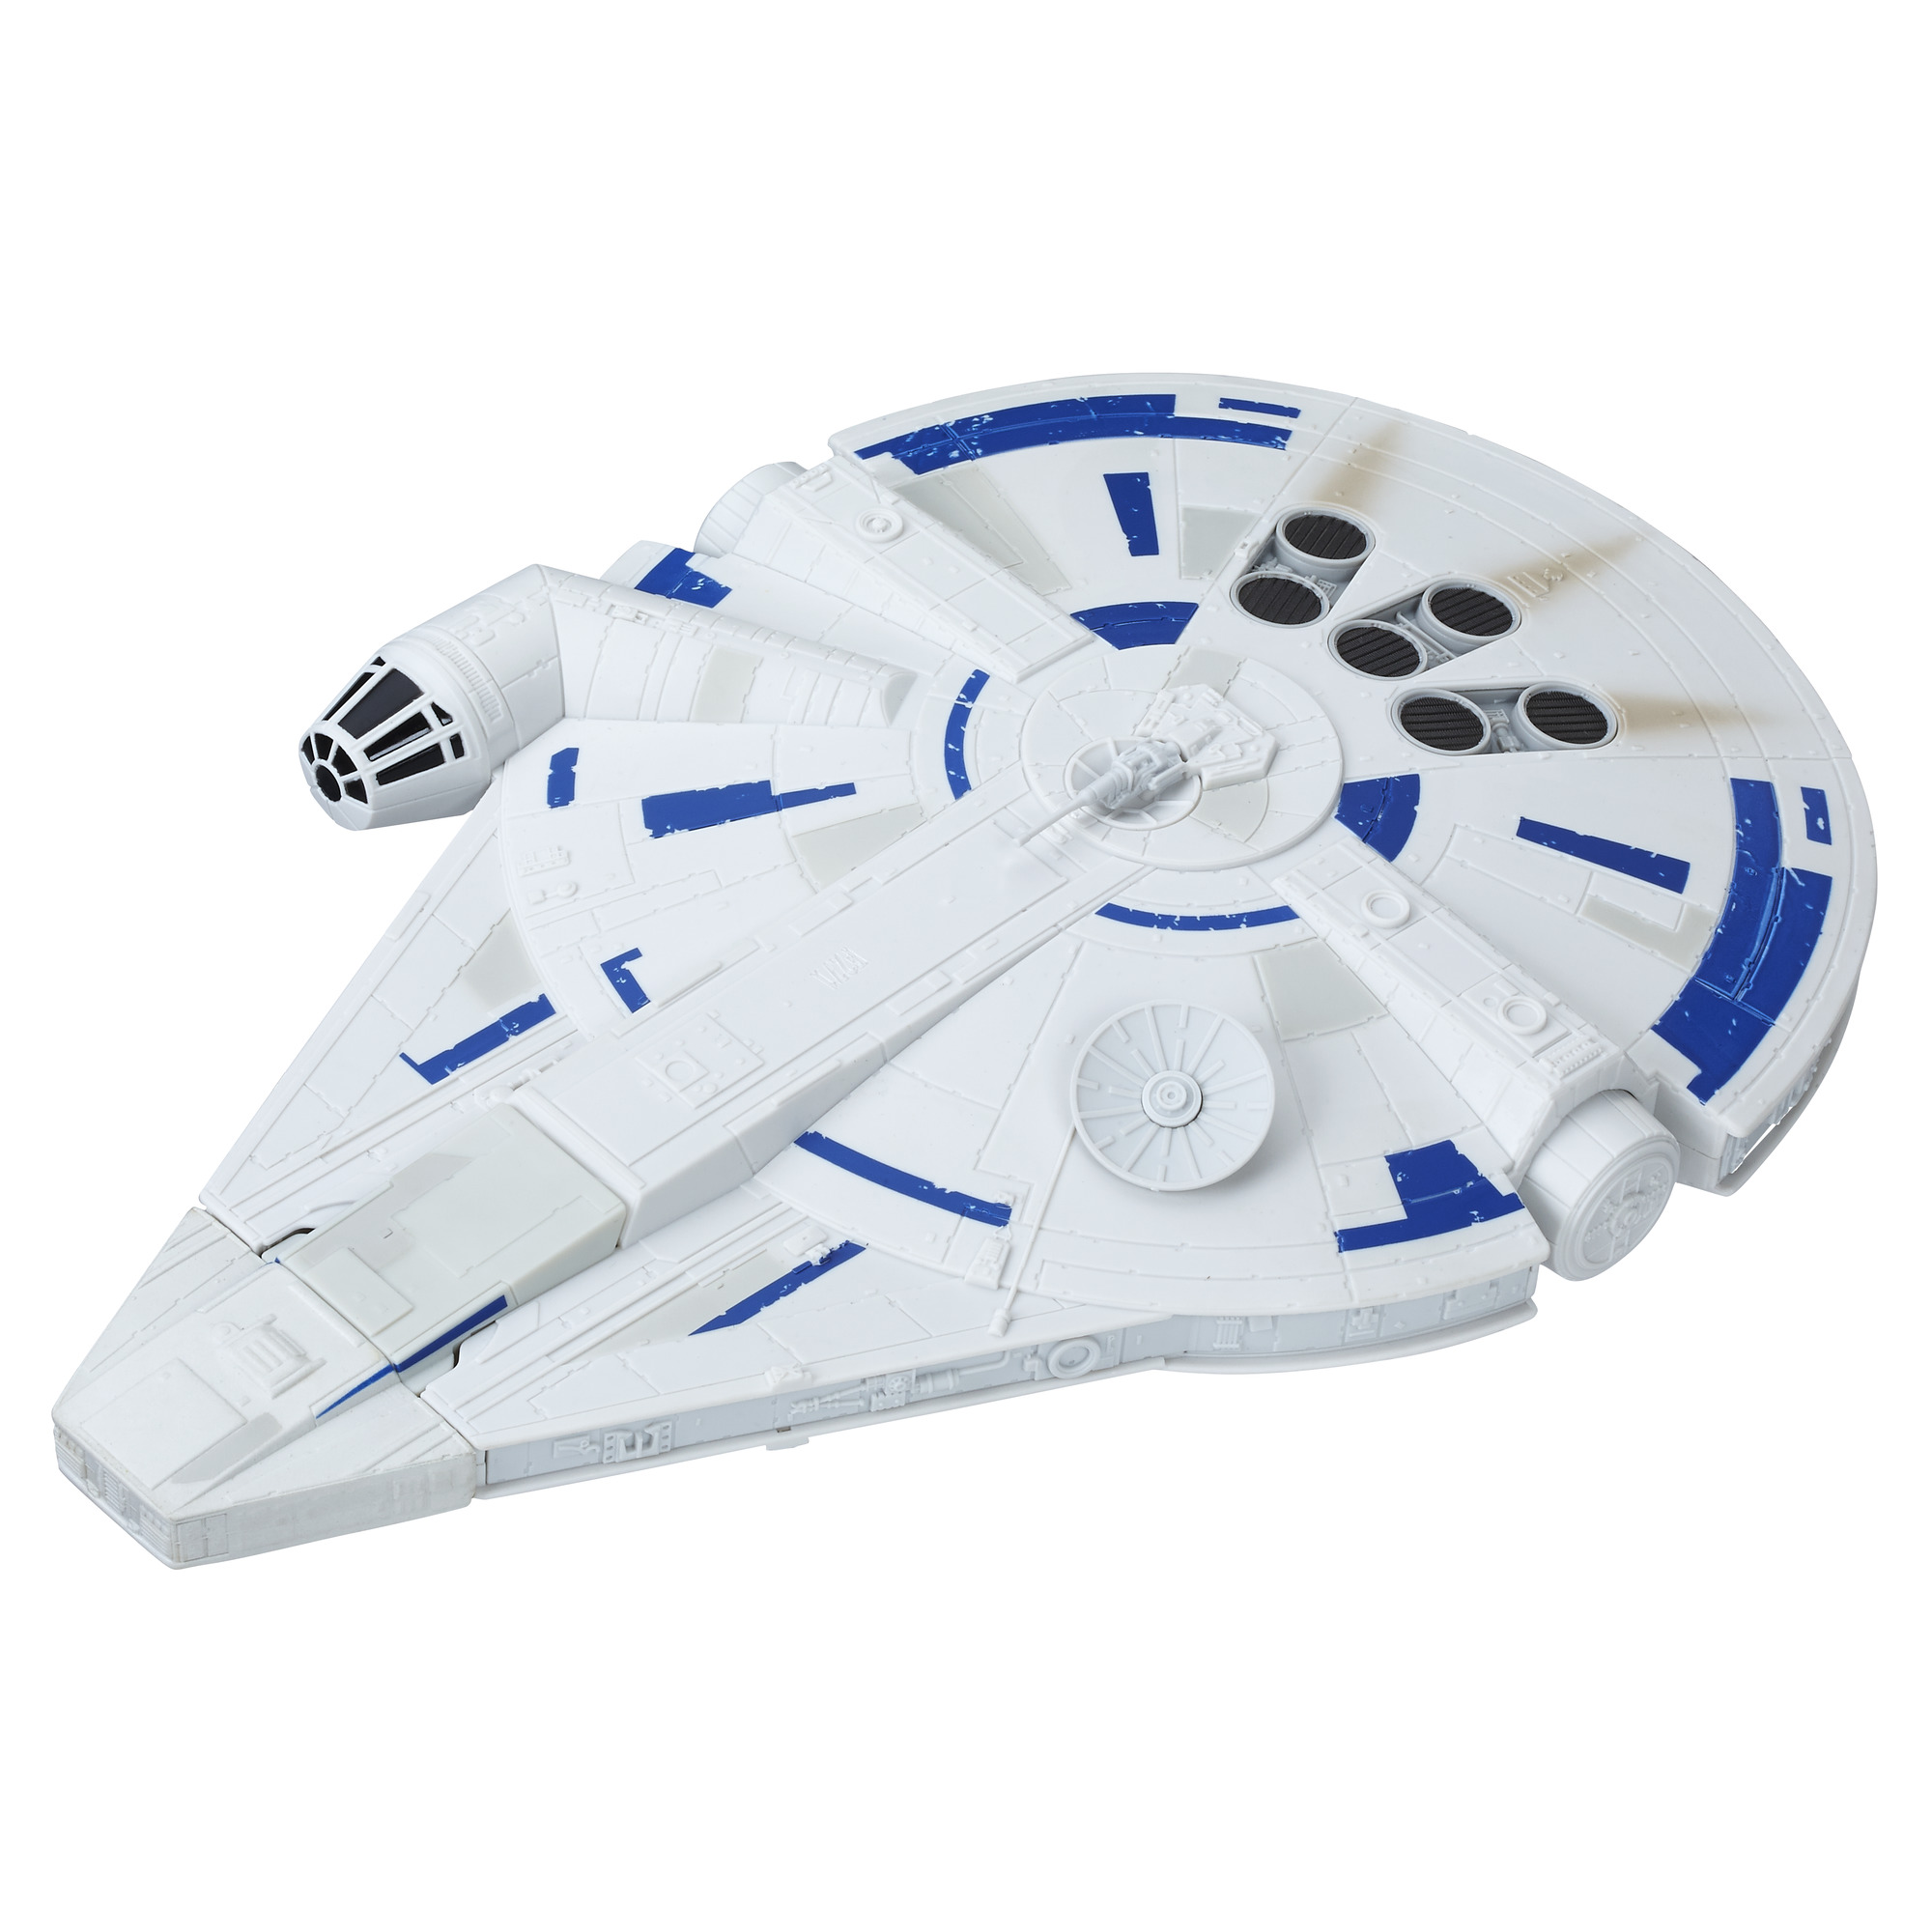 Solo: ASWS Force Link 2.0 Millennium Falcon with Escape Craft Set 2